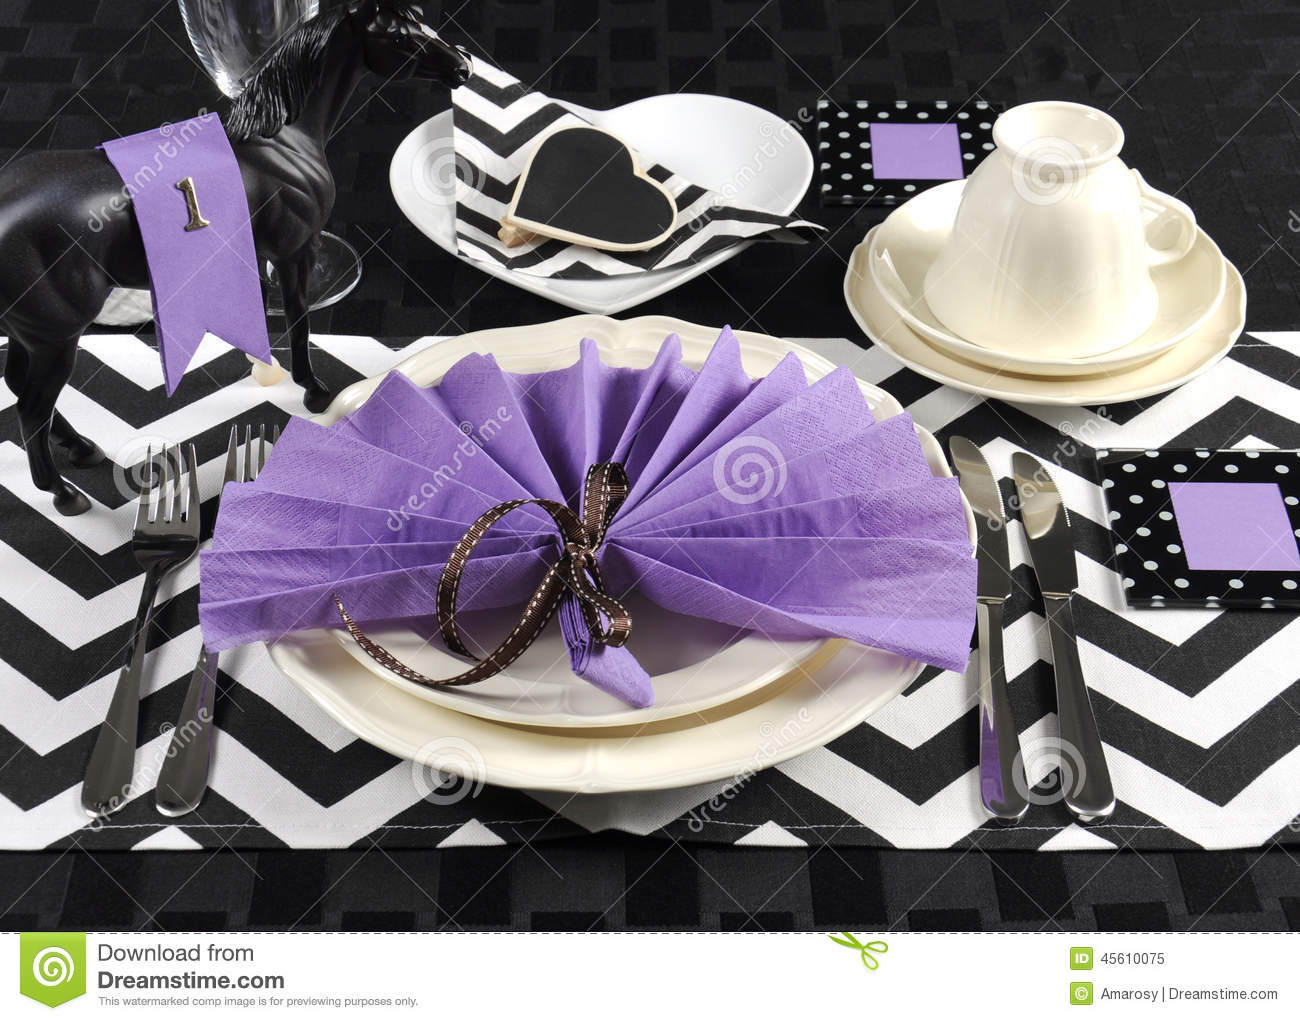 Black And White Chevron With Purple Theme Party Luncheon Table Stock Photo Image 45610075